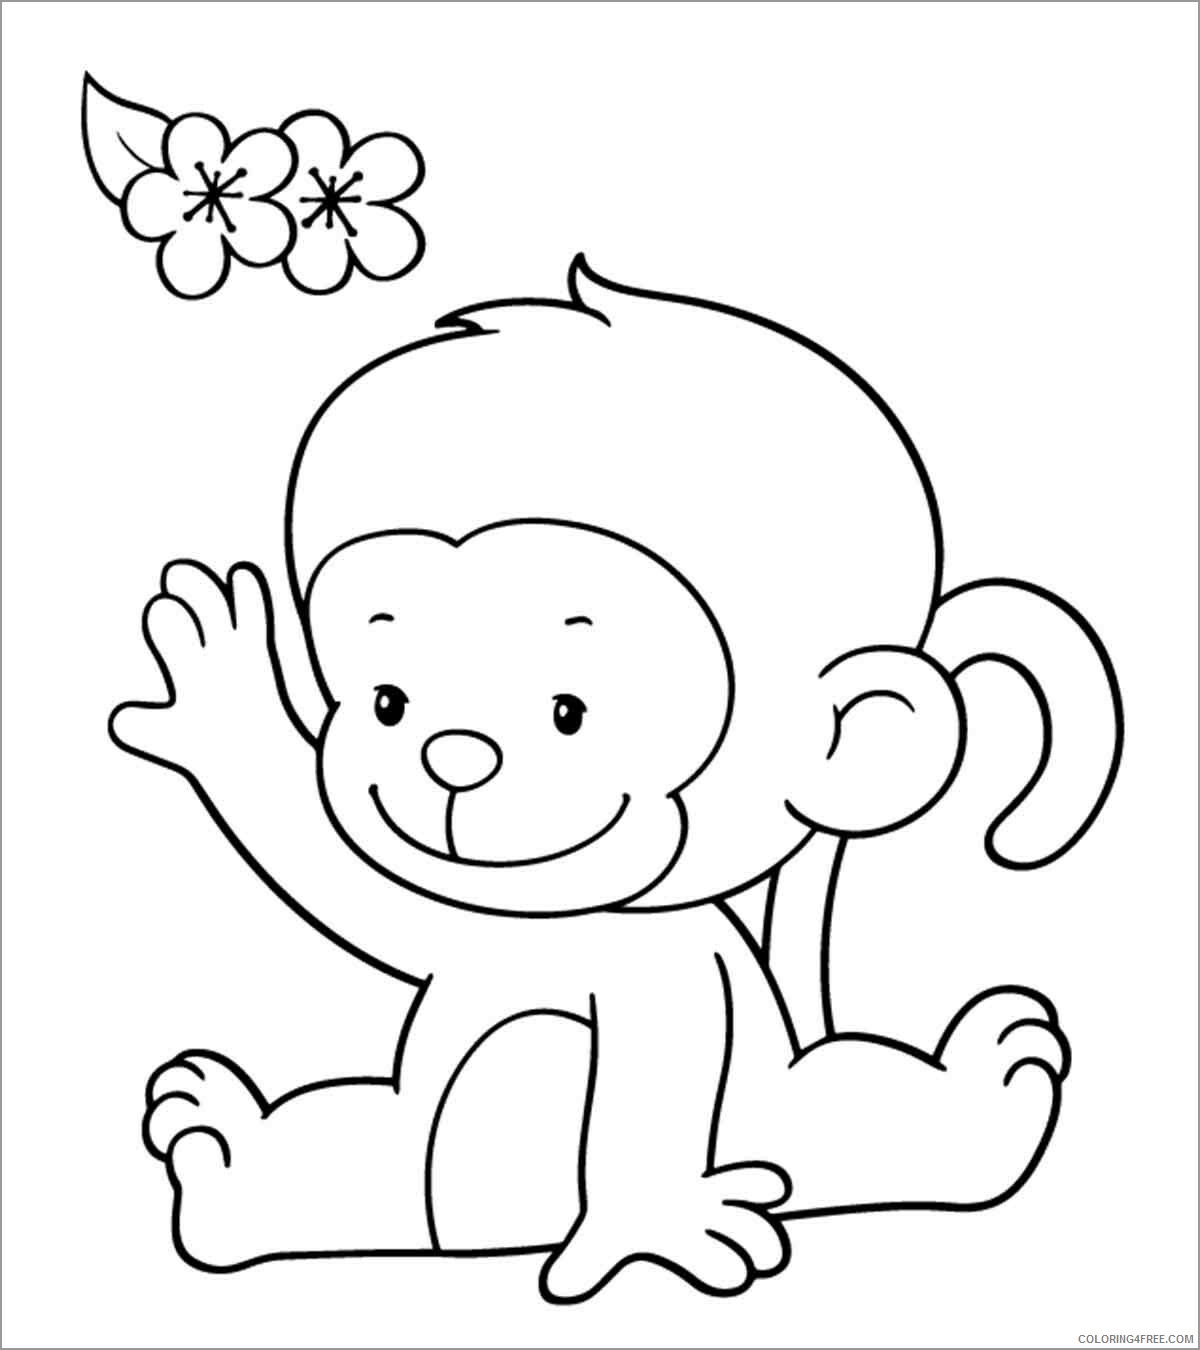 Monkey Coloring Pages Animal Printable Sheets cartoon baby monkey 2021 3285 Coloring4free